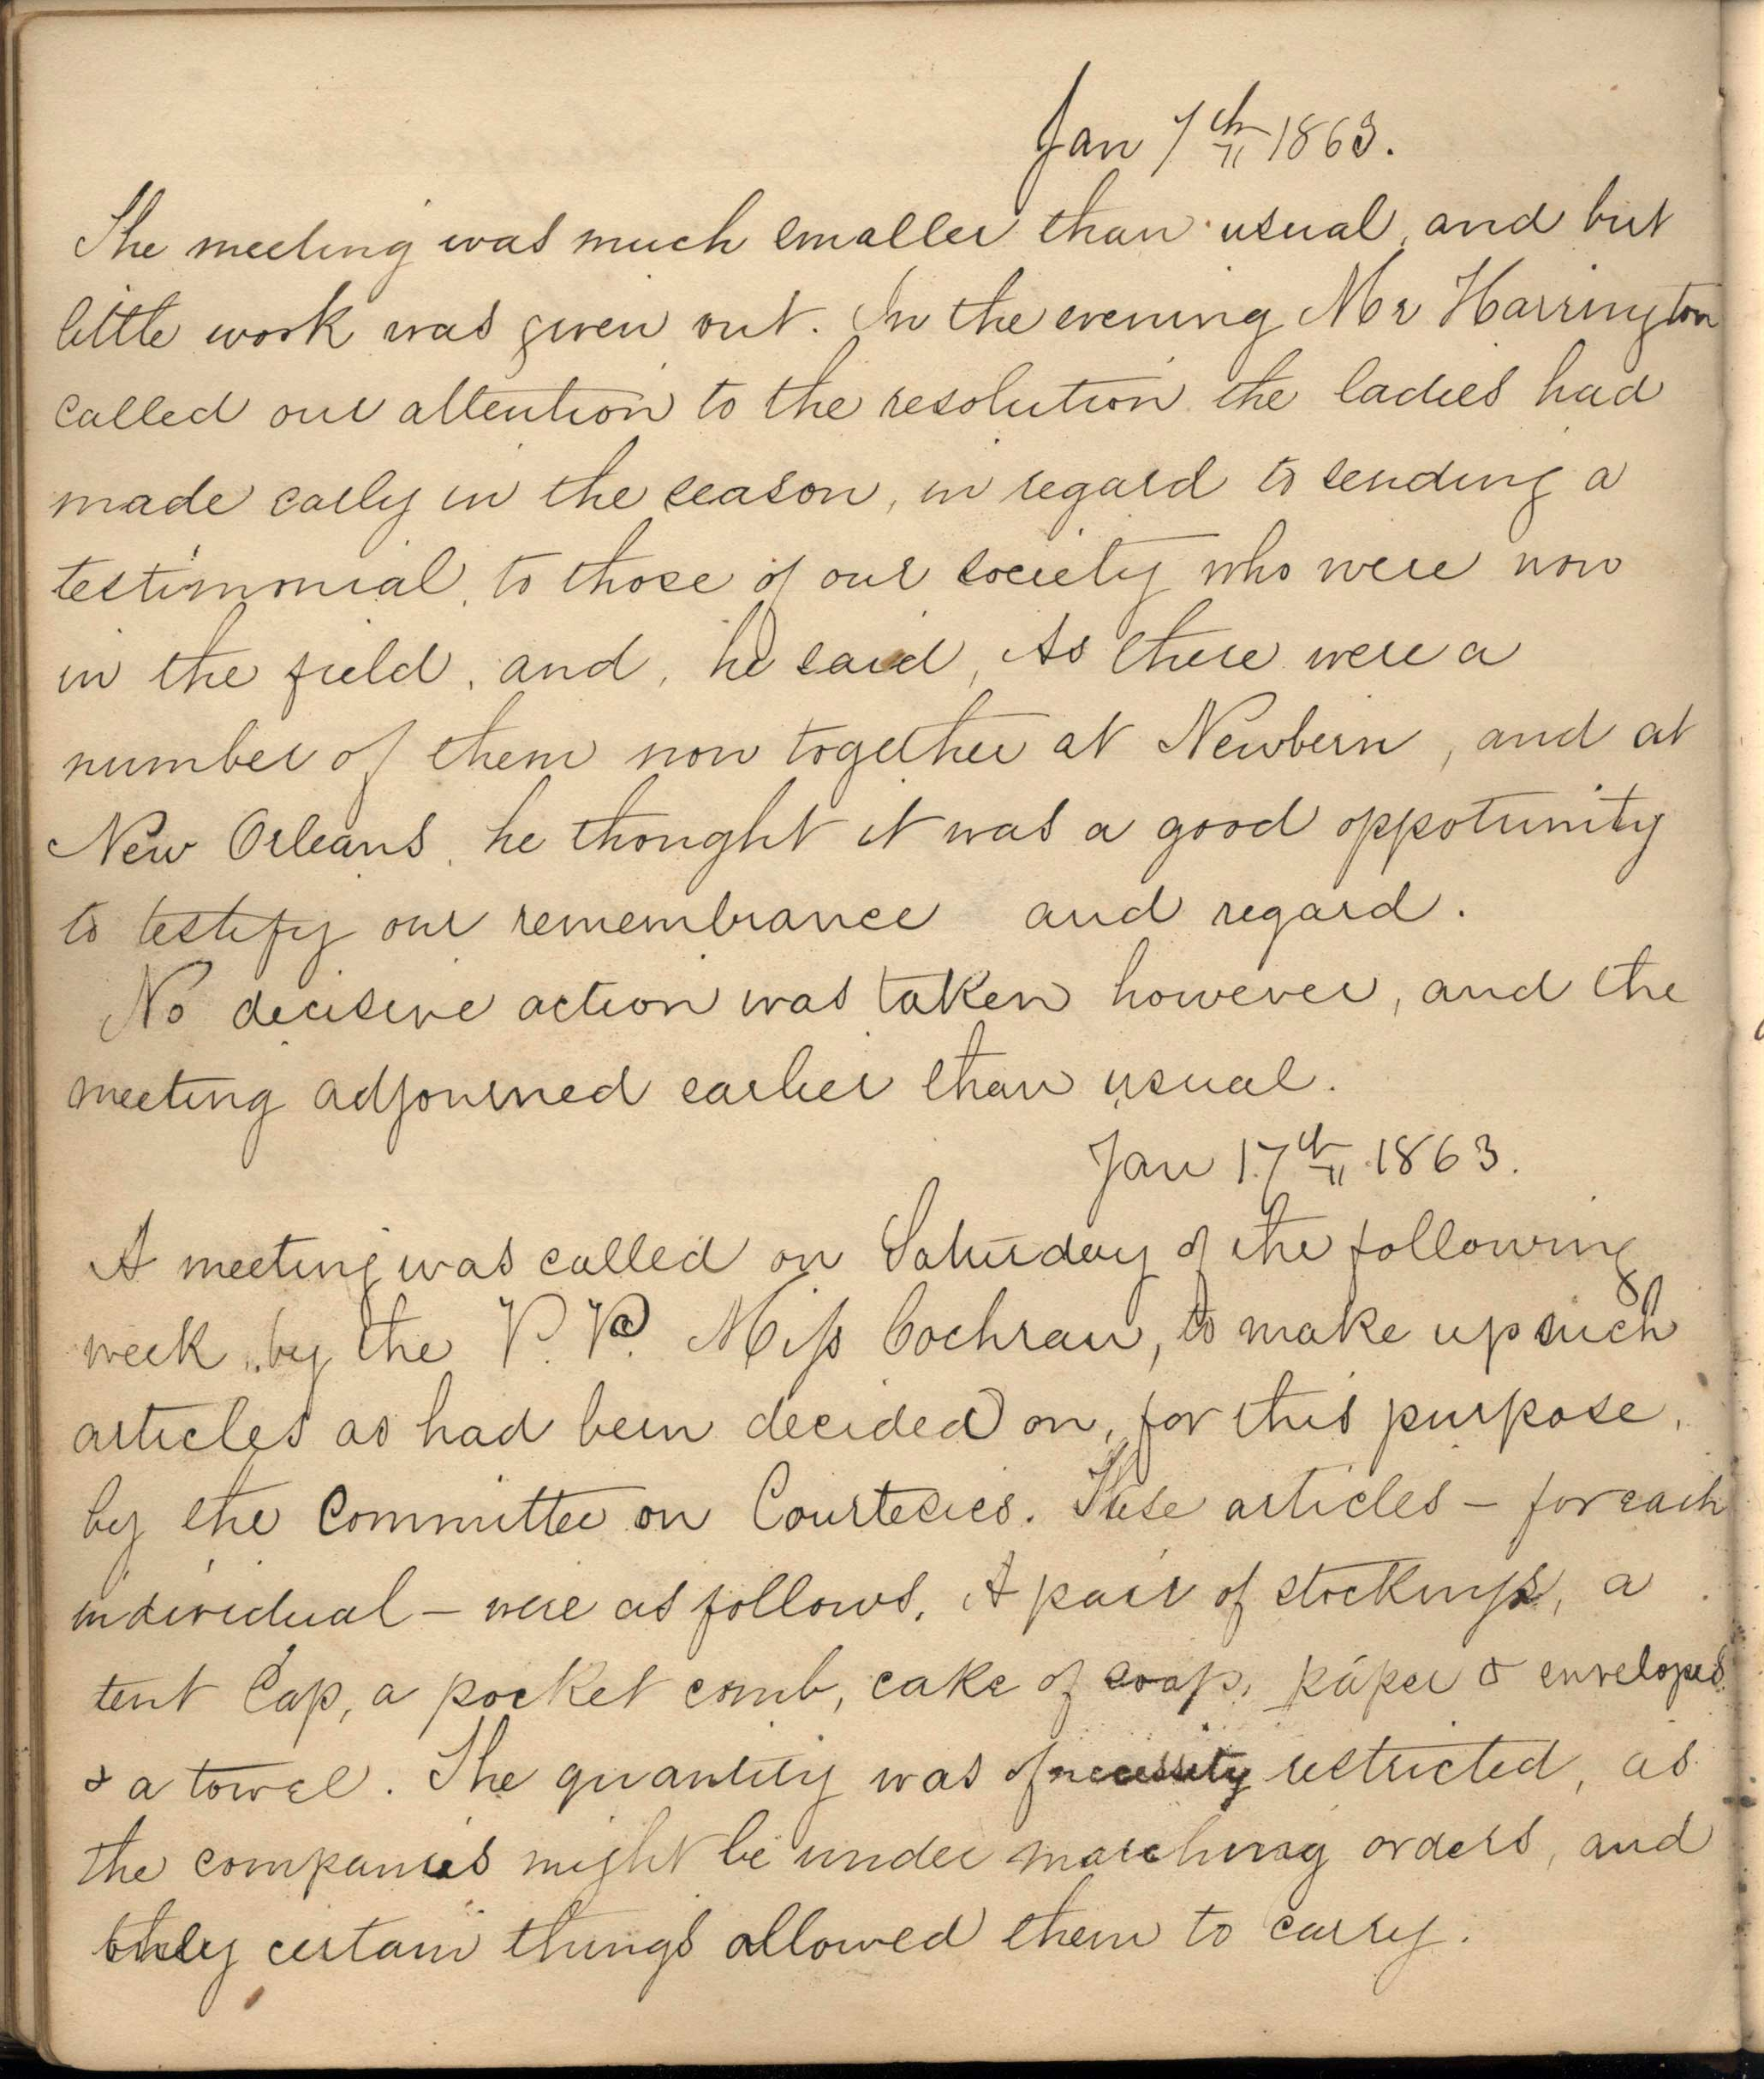 Page from handwritten records from 1863